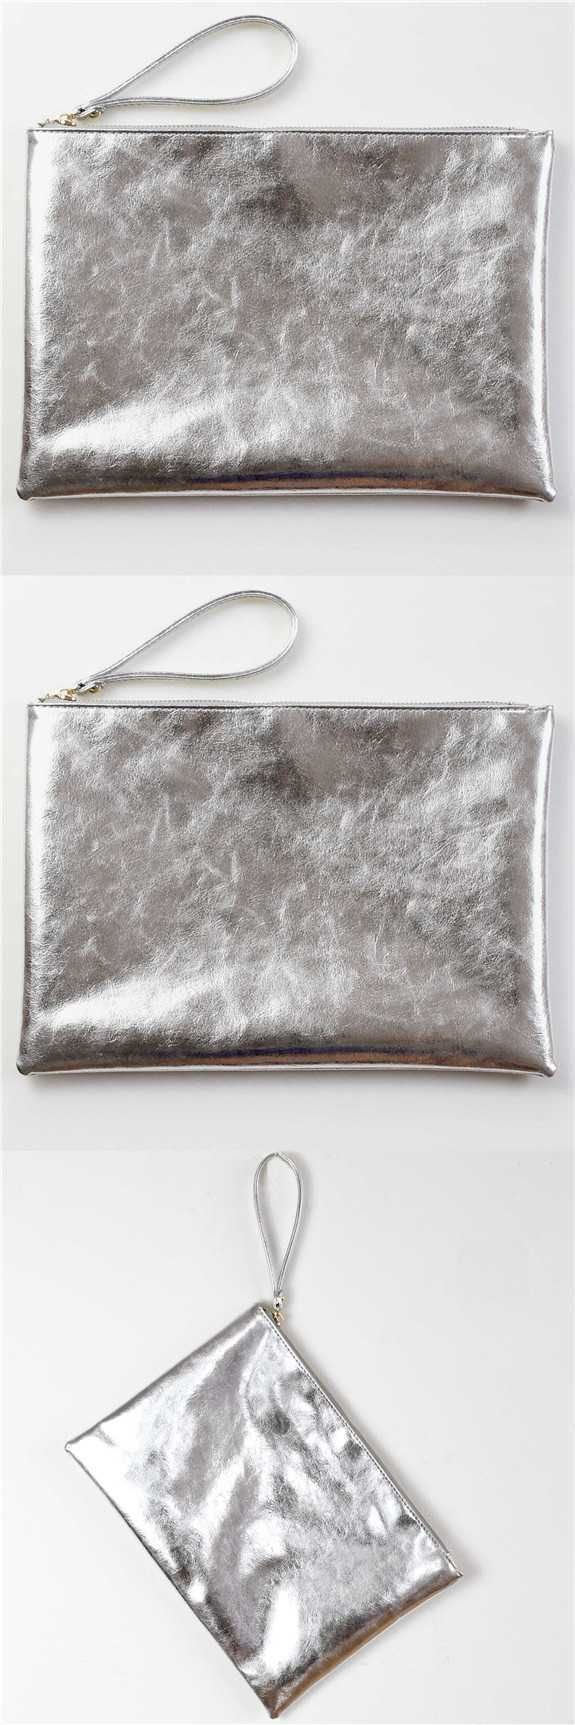 leather clutch wristlet clutch purse bags metallic clutch silver purse zipper envelope bag clutch. Save.extra 20% OFF on $45+ Sitewide till 30th use code SUMMER20%OFF